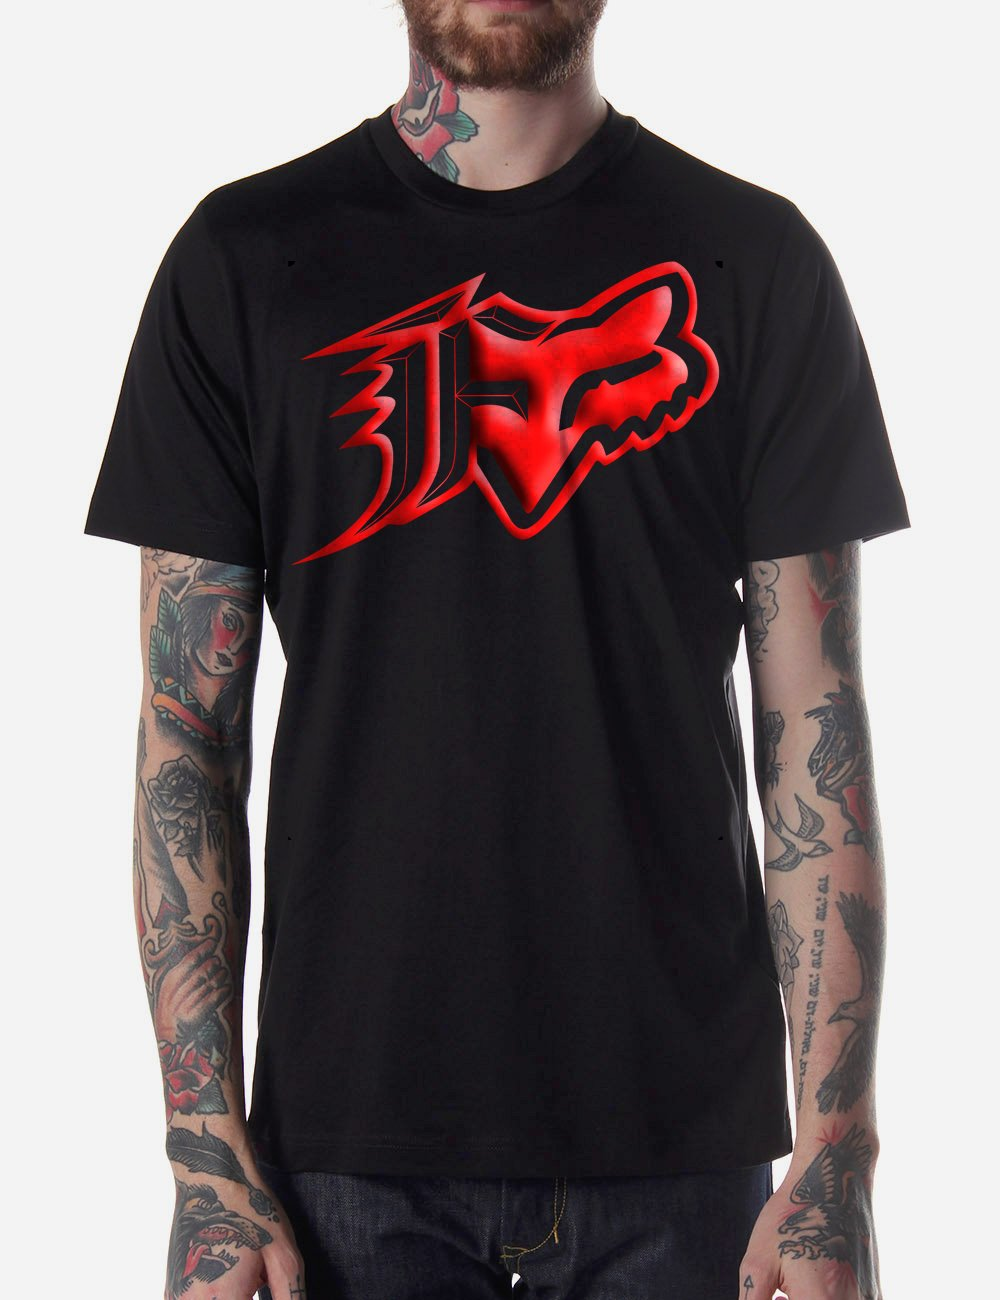 Black Men Tshirt Fox Racing Black Tshirt For Men